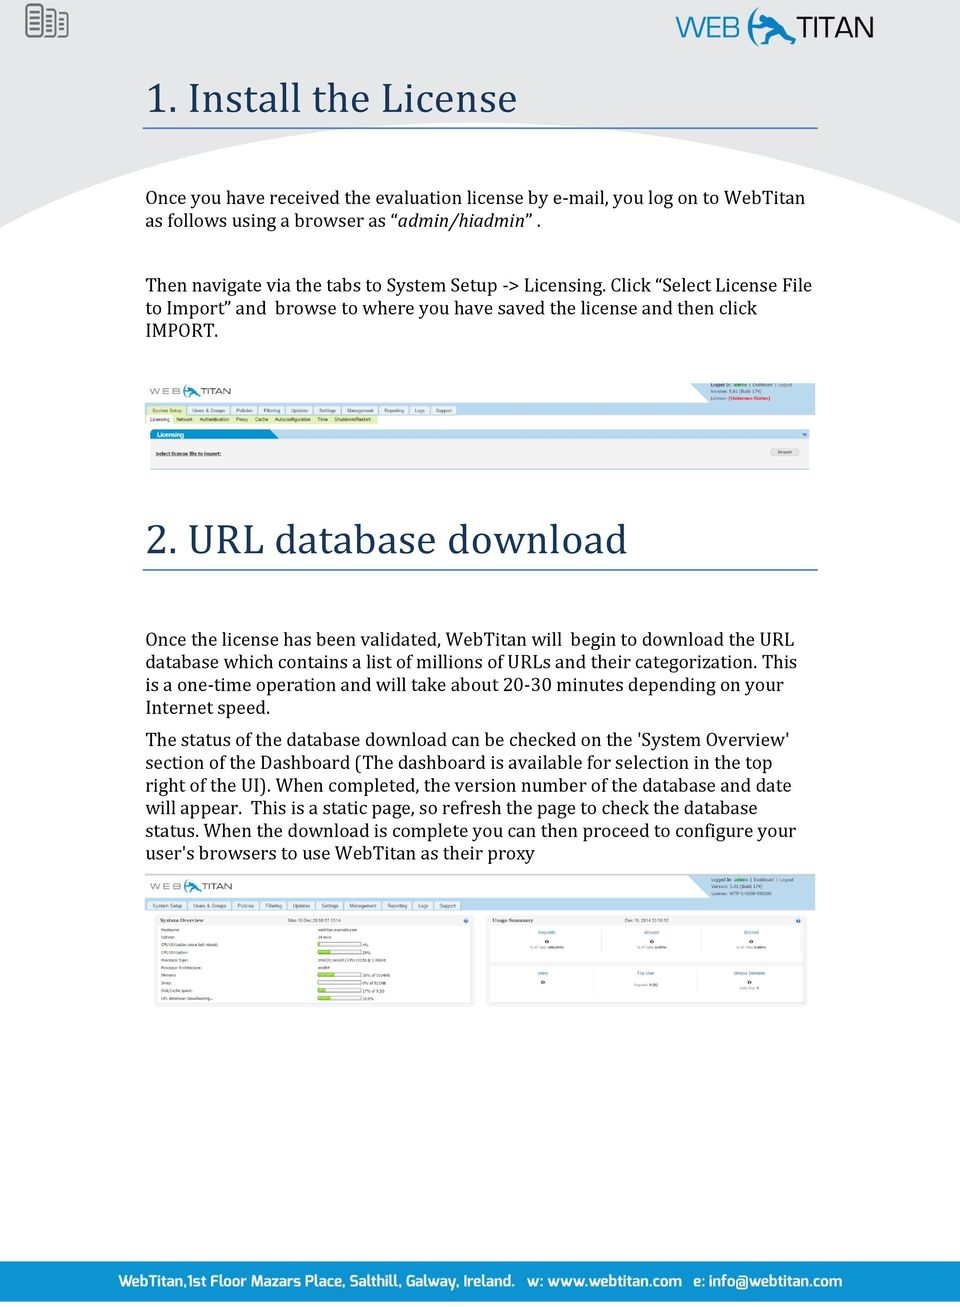 URL database download Once the license has been validated, WebTitan will begin to download the URL database which contains a list of millions of URLs and their categorization.